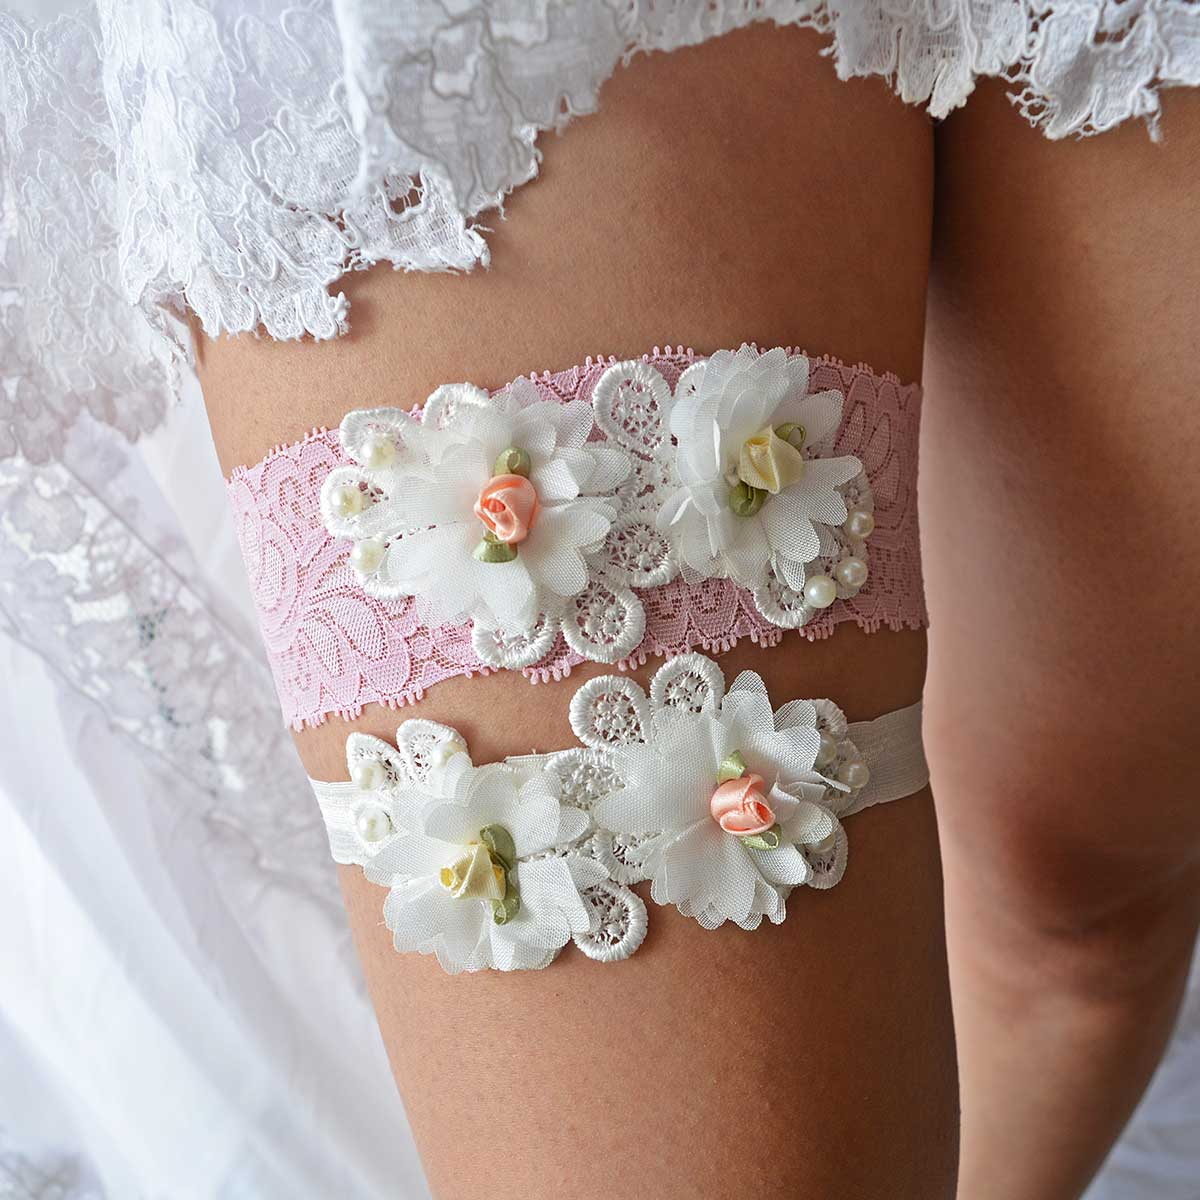 Blush Pink Bridal Garter With Ivory Pearls & Flowers Handmade